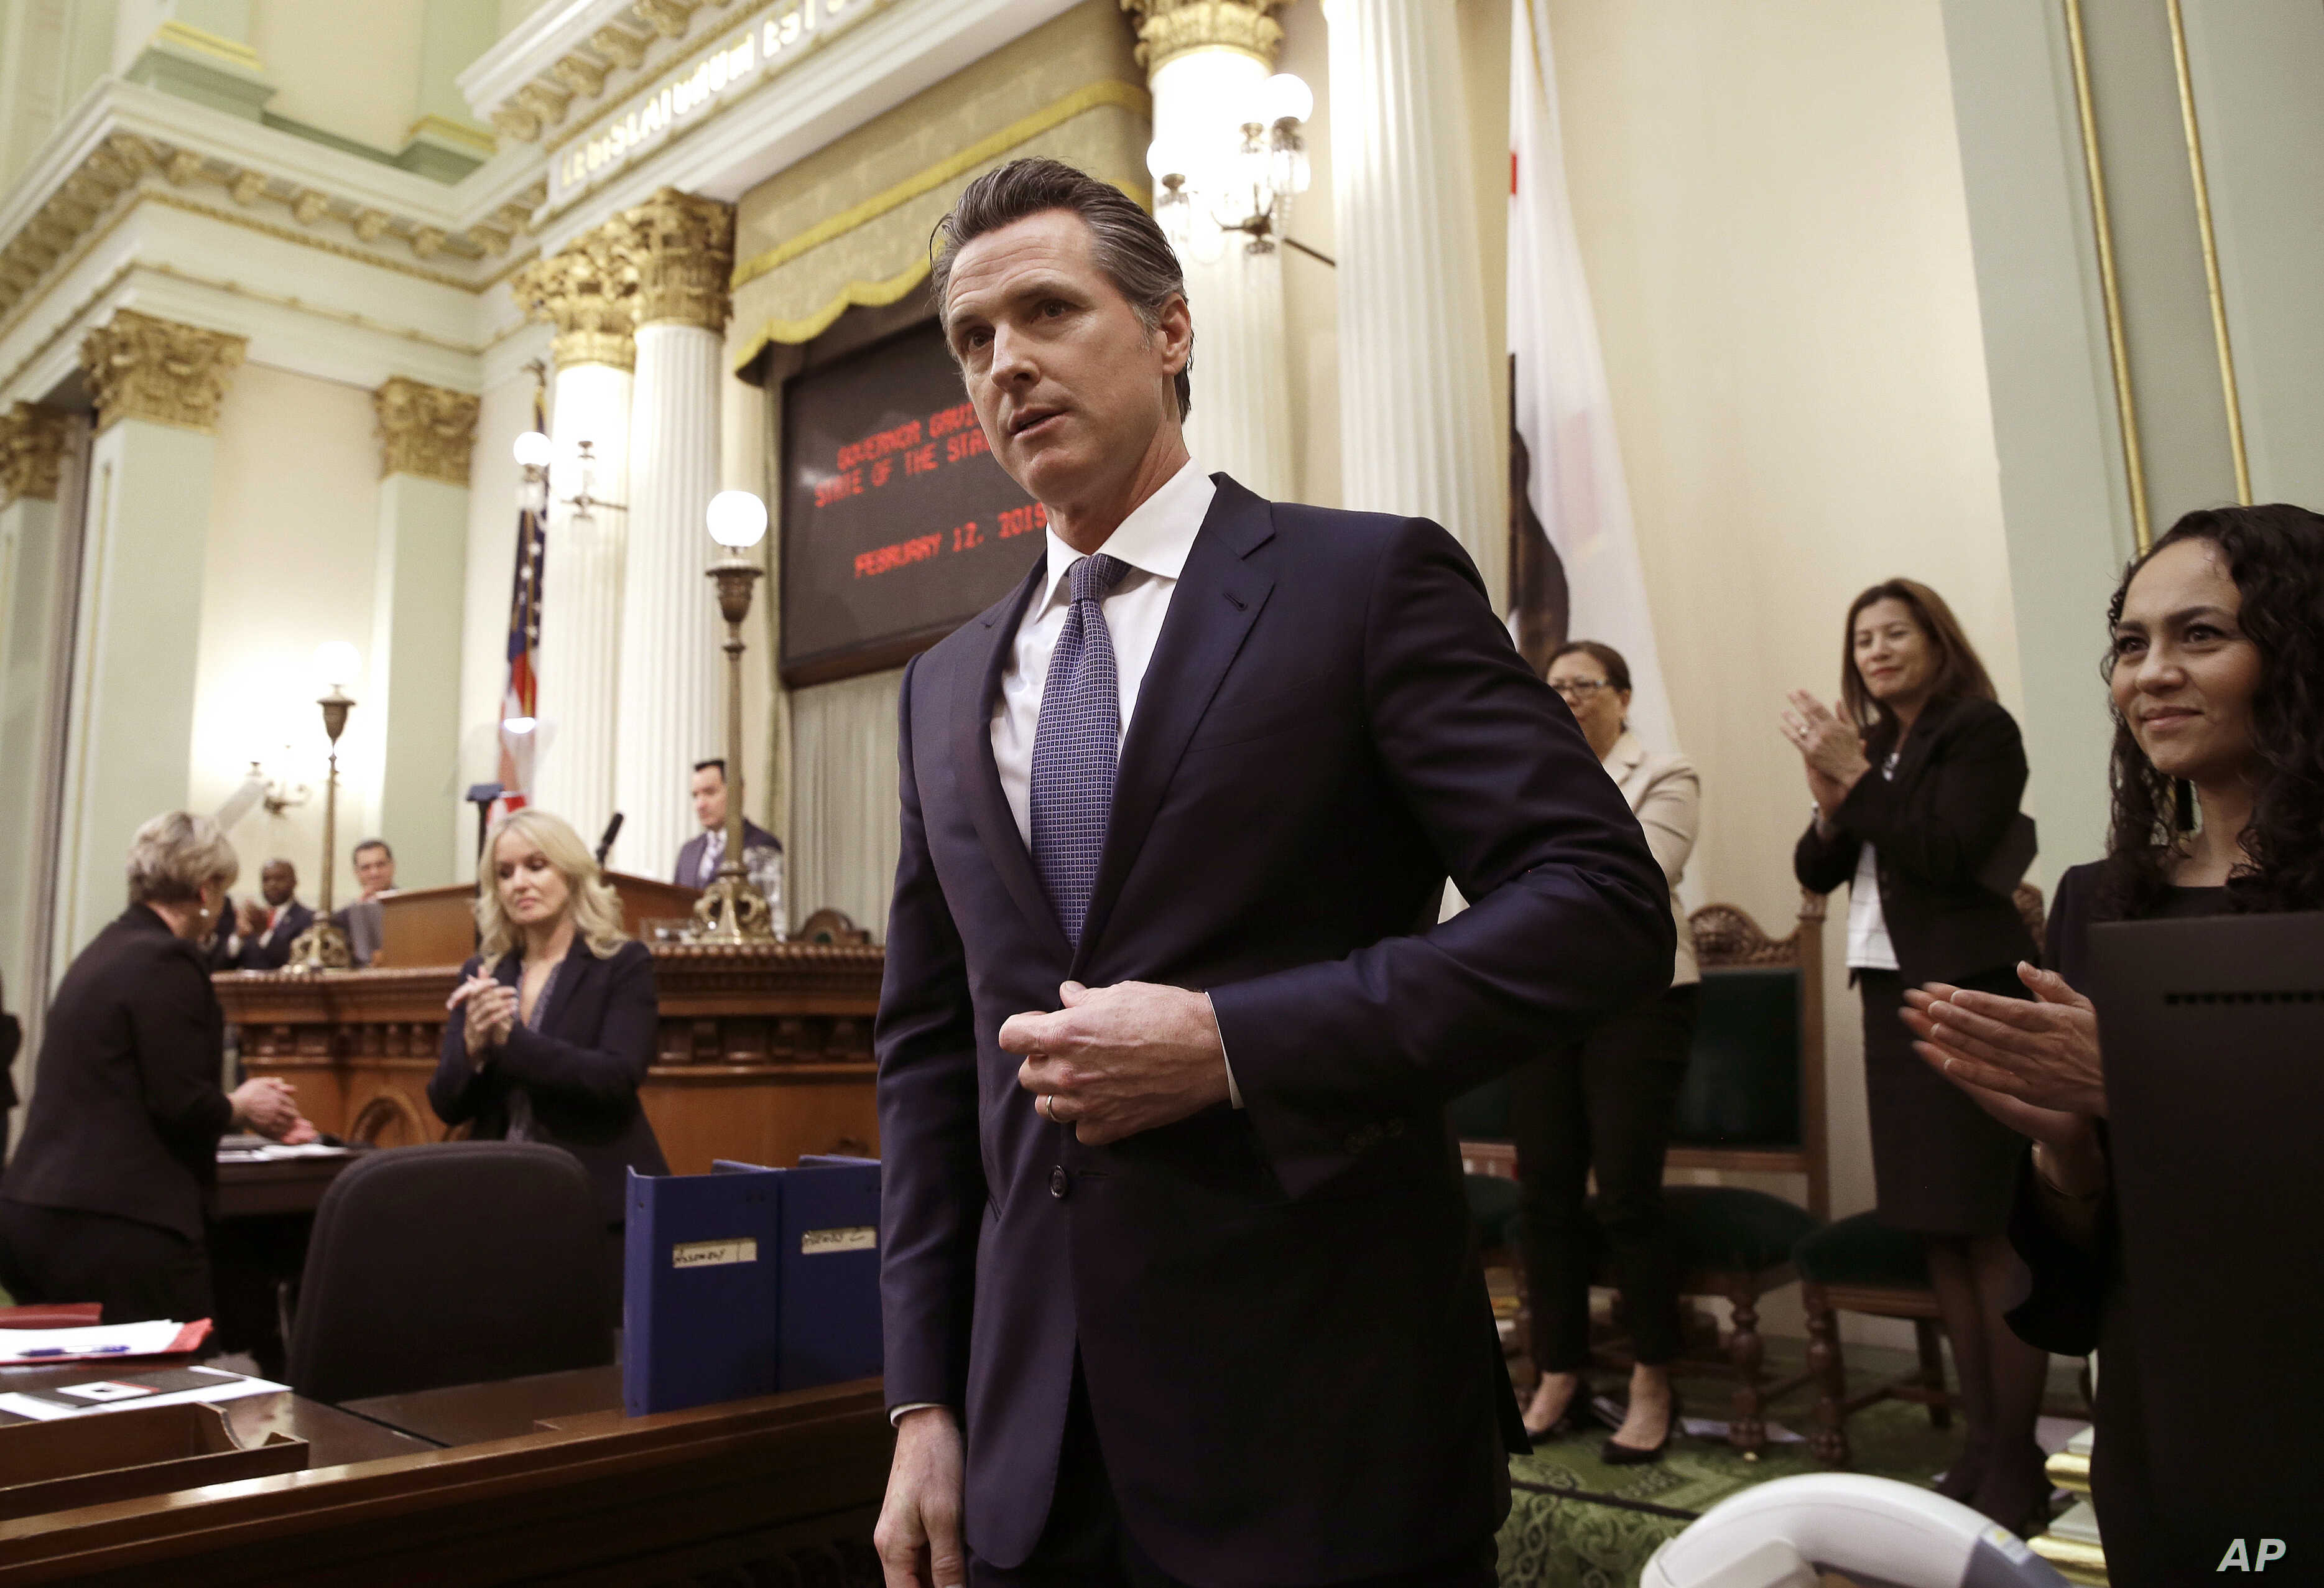 FILE - California Gov. Gavin Newsom receives applause after delivering his first state of the state address to a joint session of the legislature at the Capitol in Sacramento, Calif., Feb. 12, 2019.